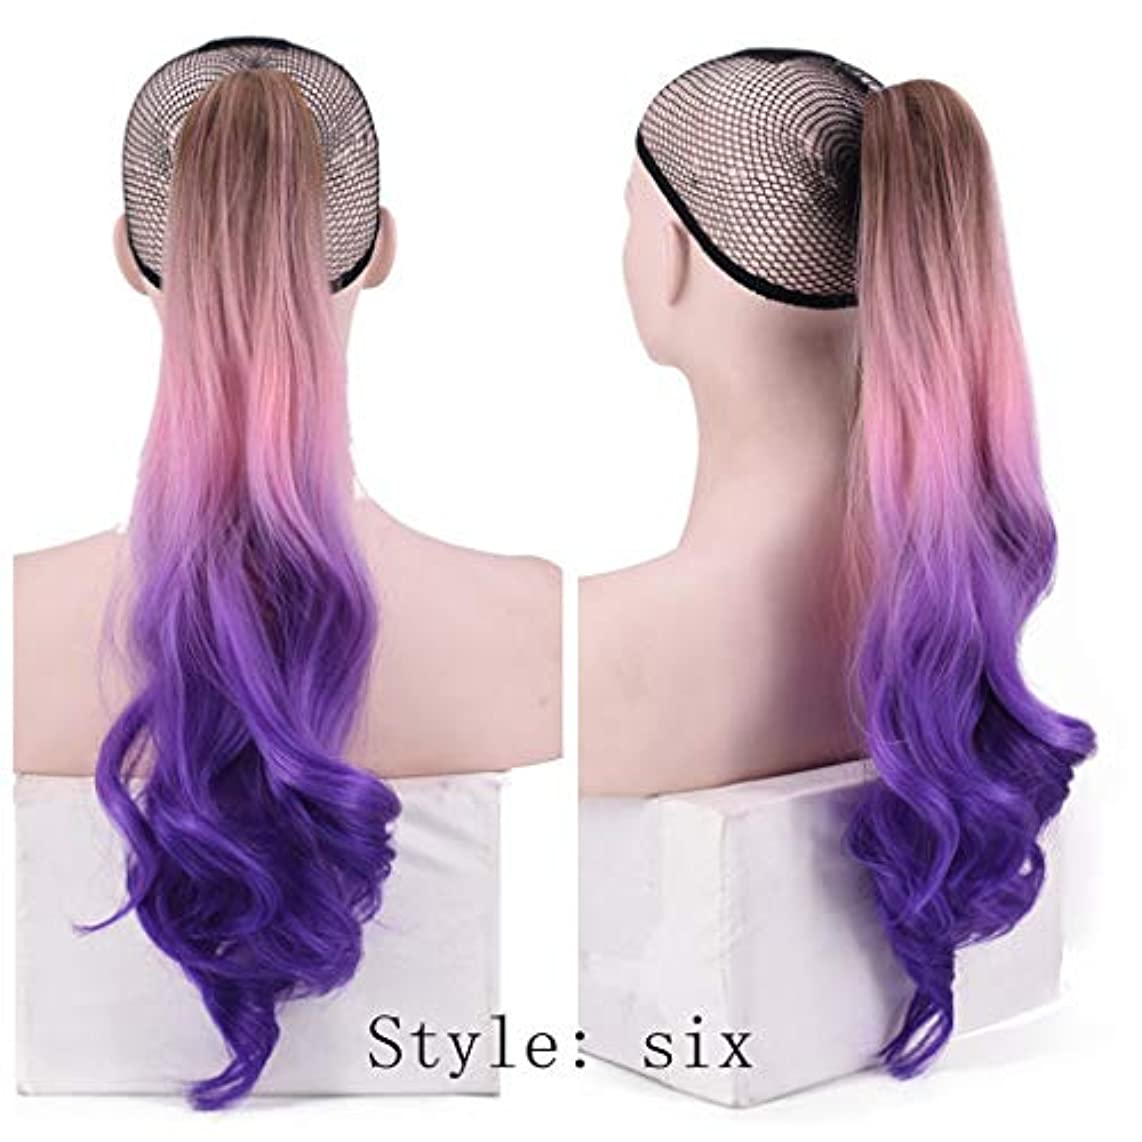 JJLIKER Women Multicolor Curly Synthetic Ponytail Hair Wigs Extension Synthetic Hairpiece with a Claw Clip 21 inches